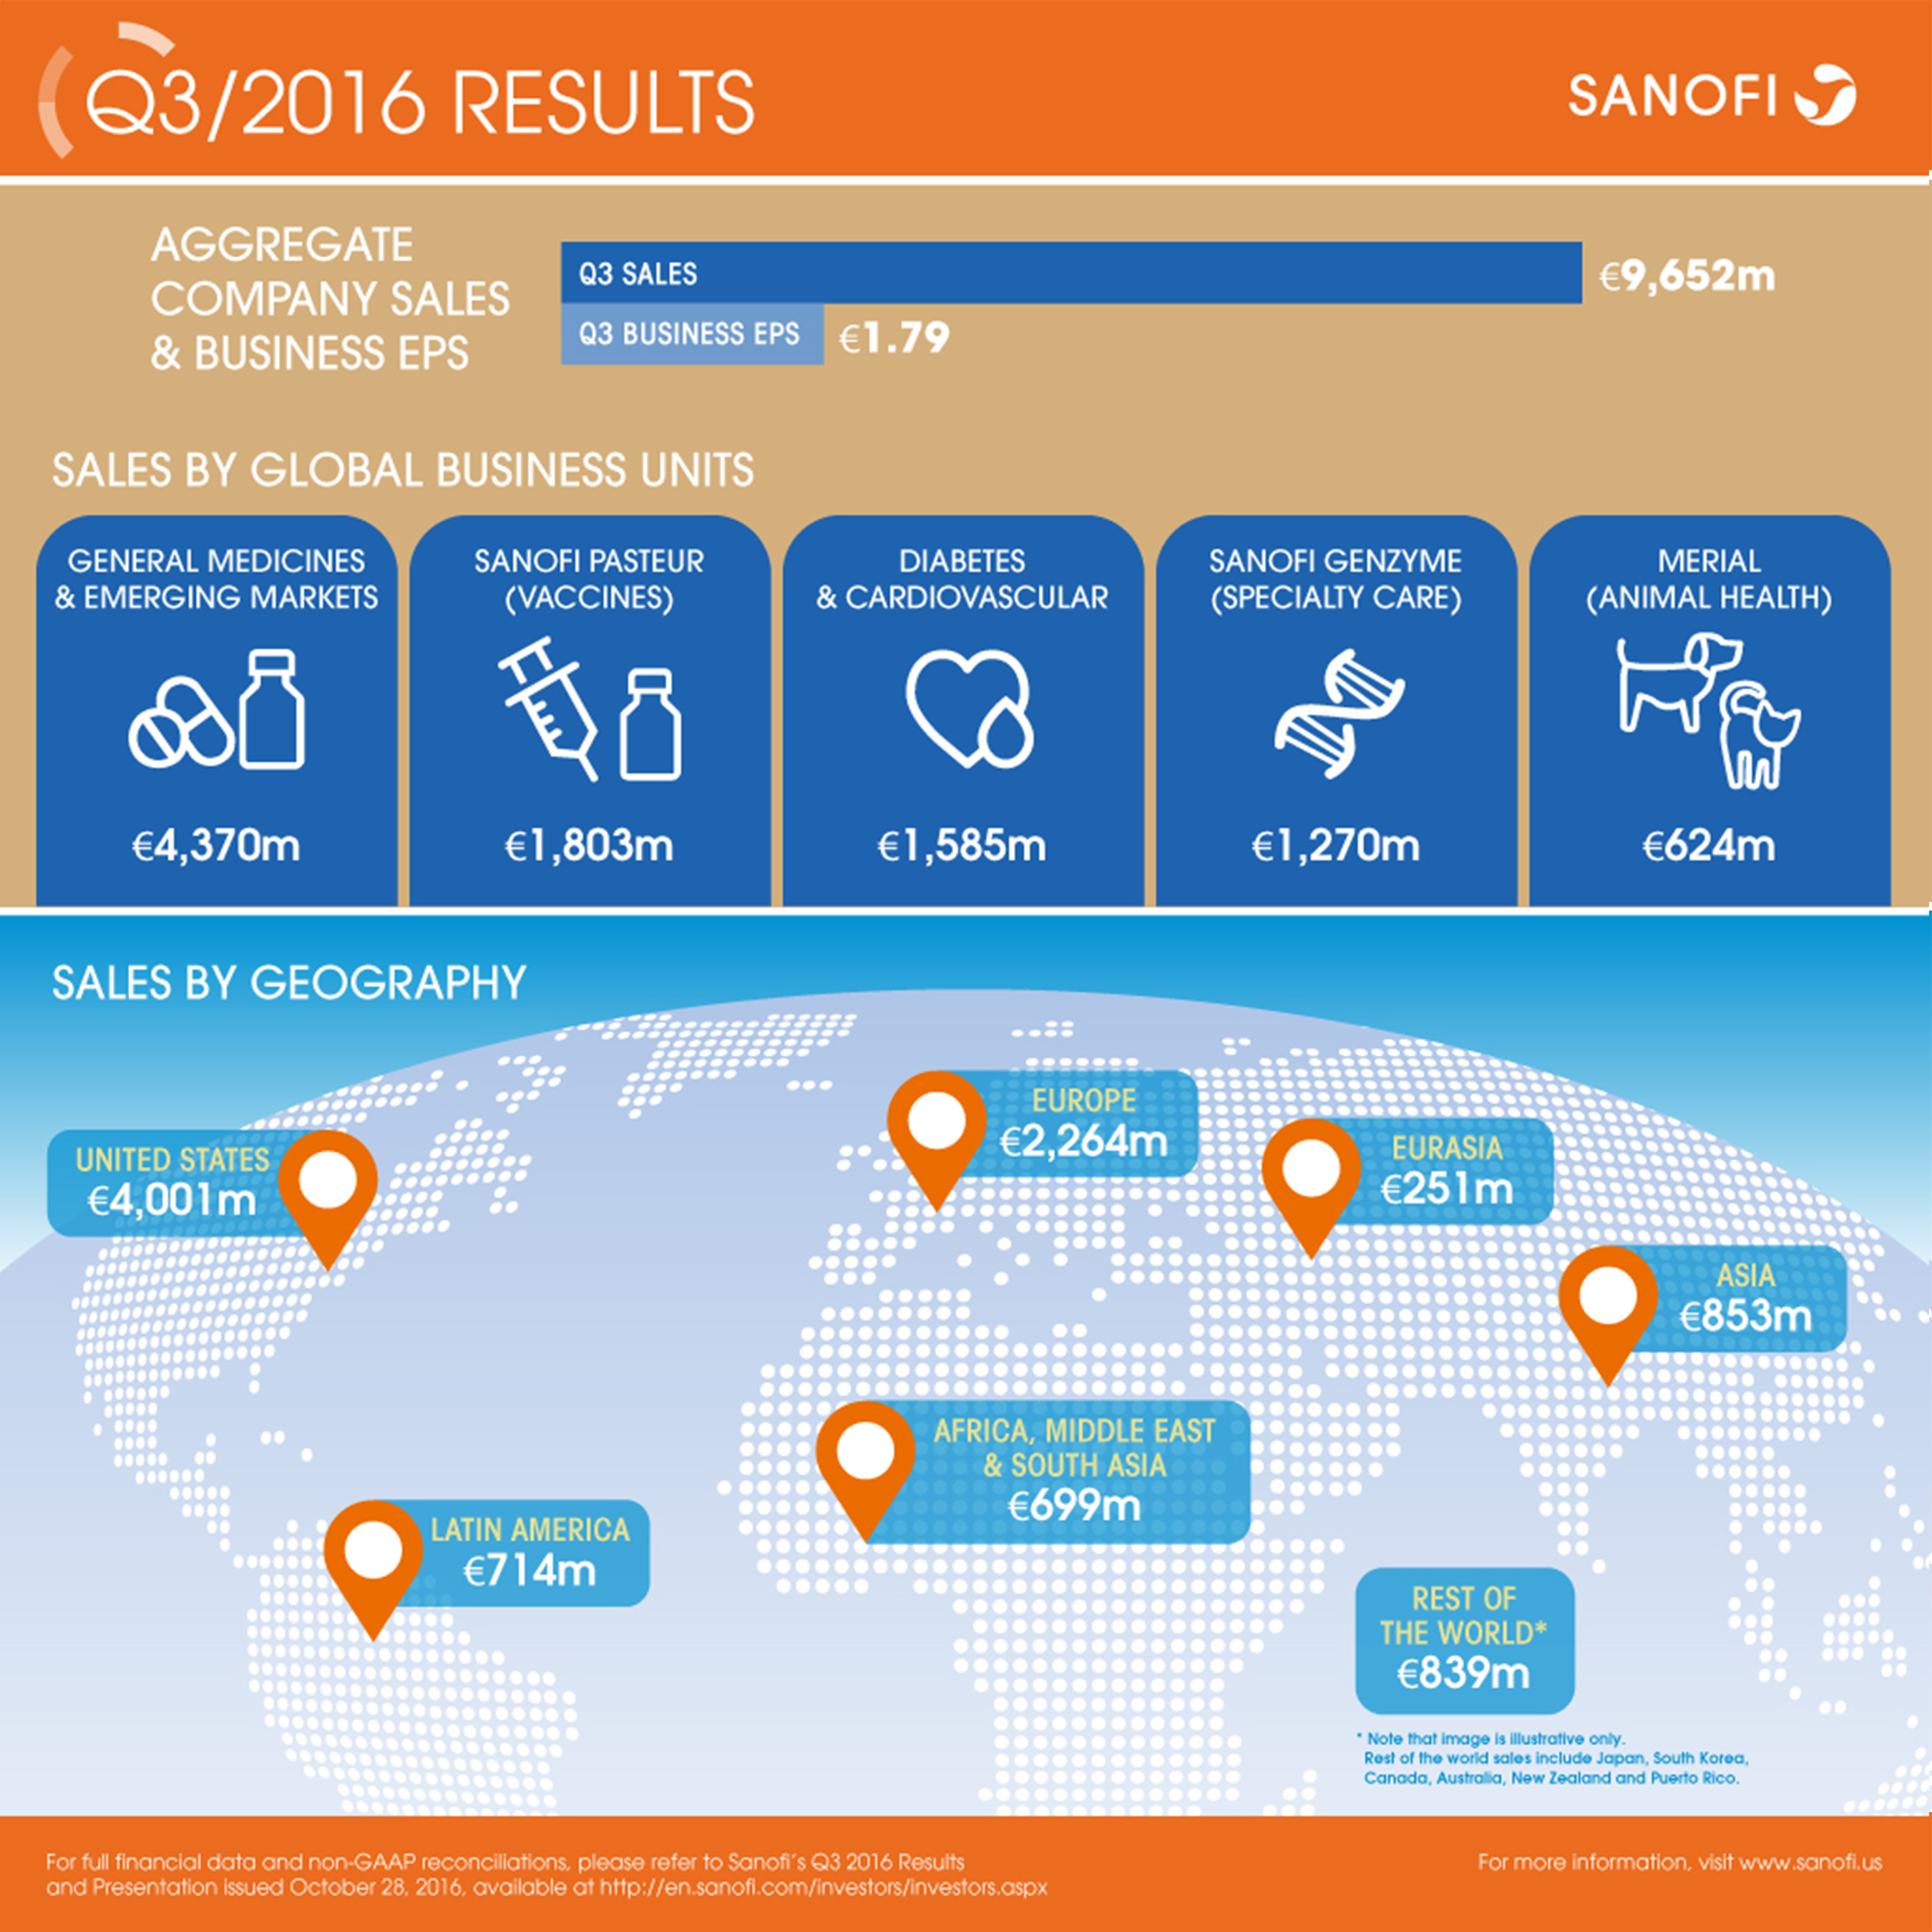 Sanofi Q3 2016 Earnings Results Infographic